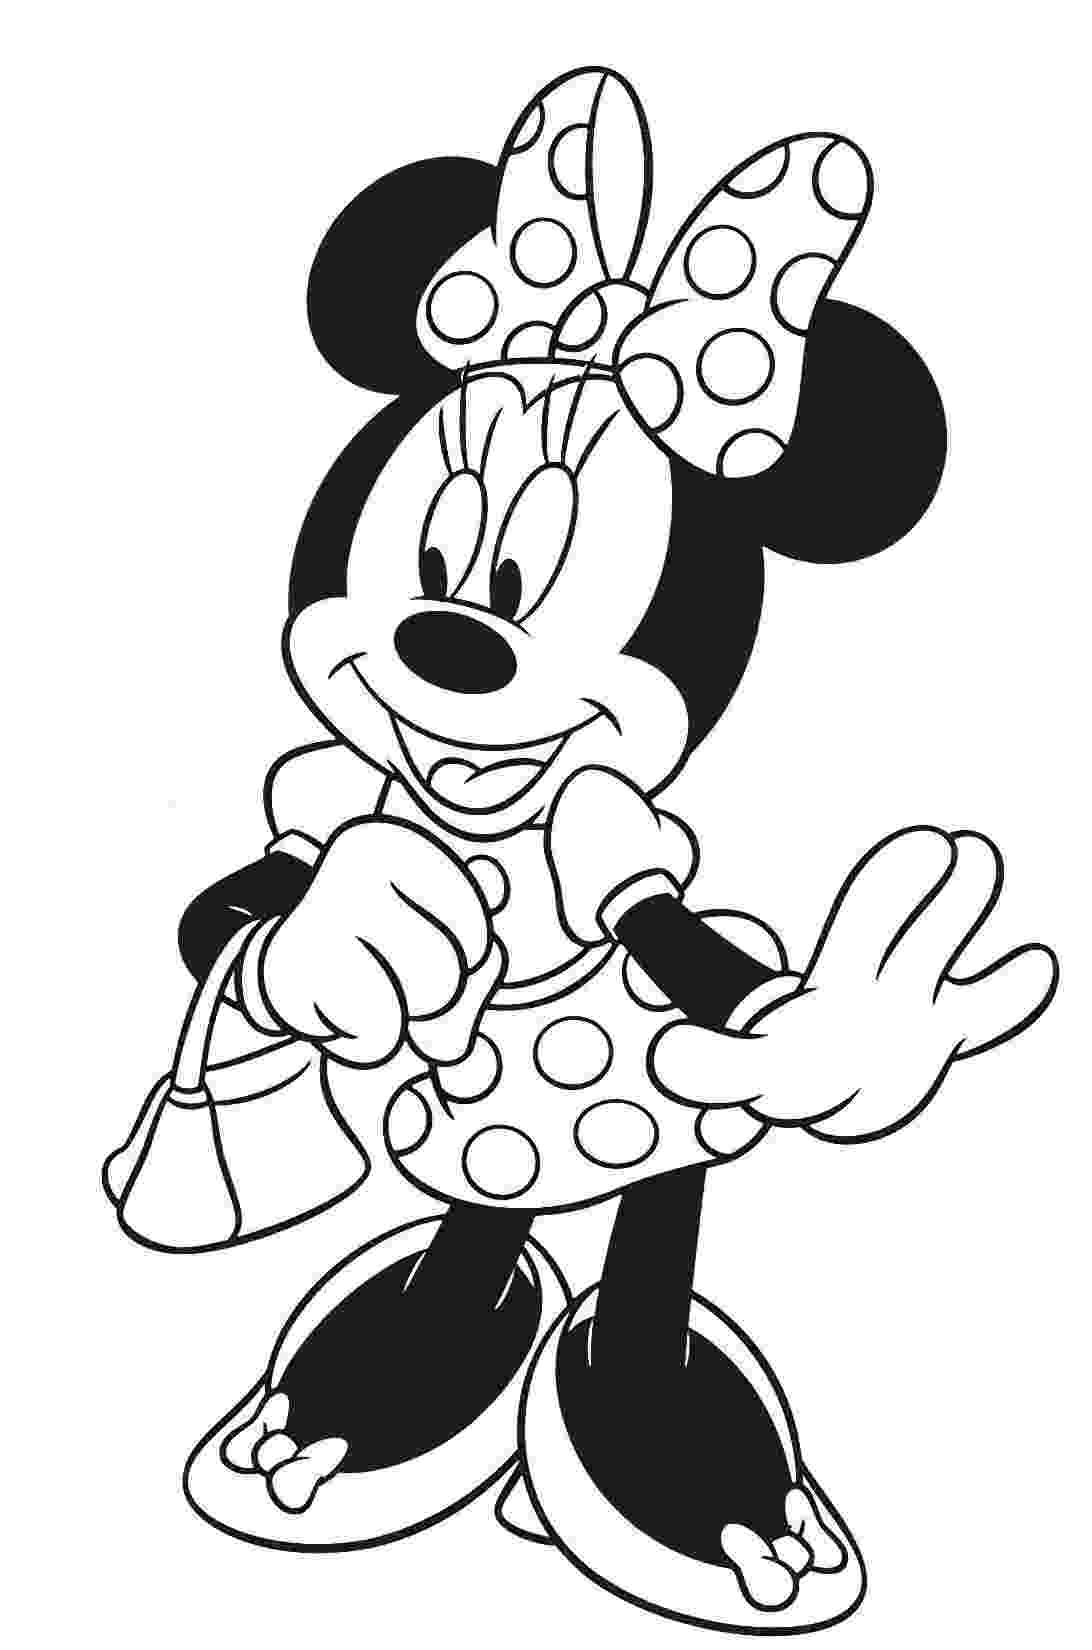 colouring pages of mickey mouse and minnie minnie mouse minnie mouse coloring pages mouse color mouse colouring minnie mickey of and pages